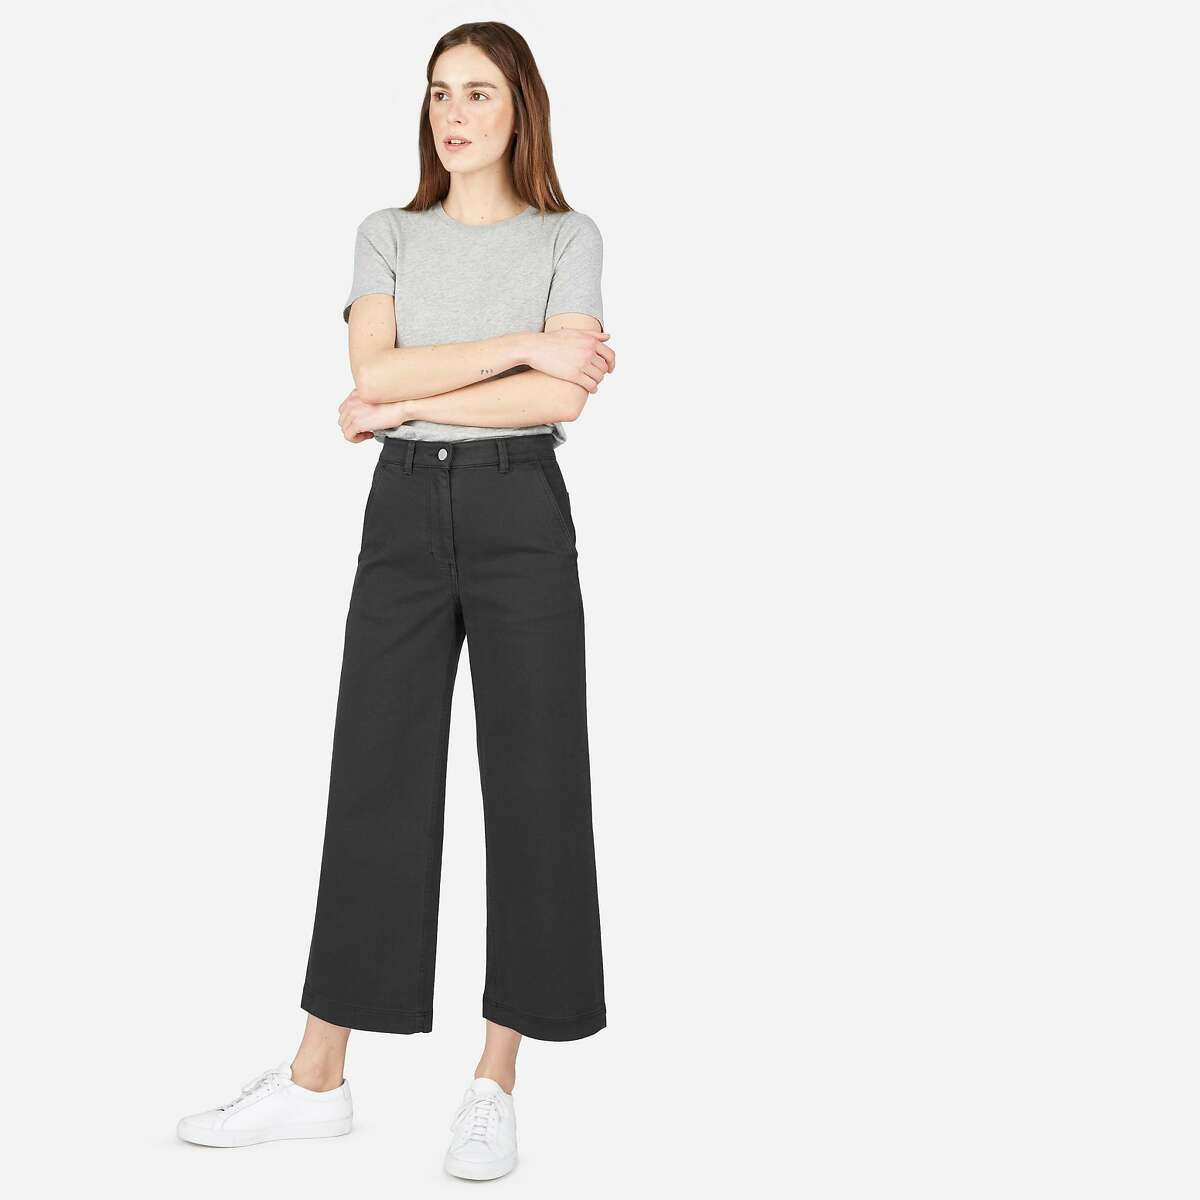 The wide leg crop pant from Everlane